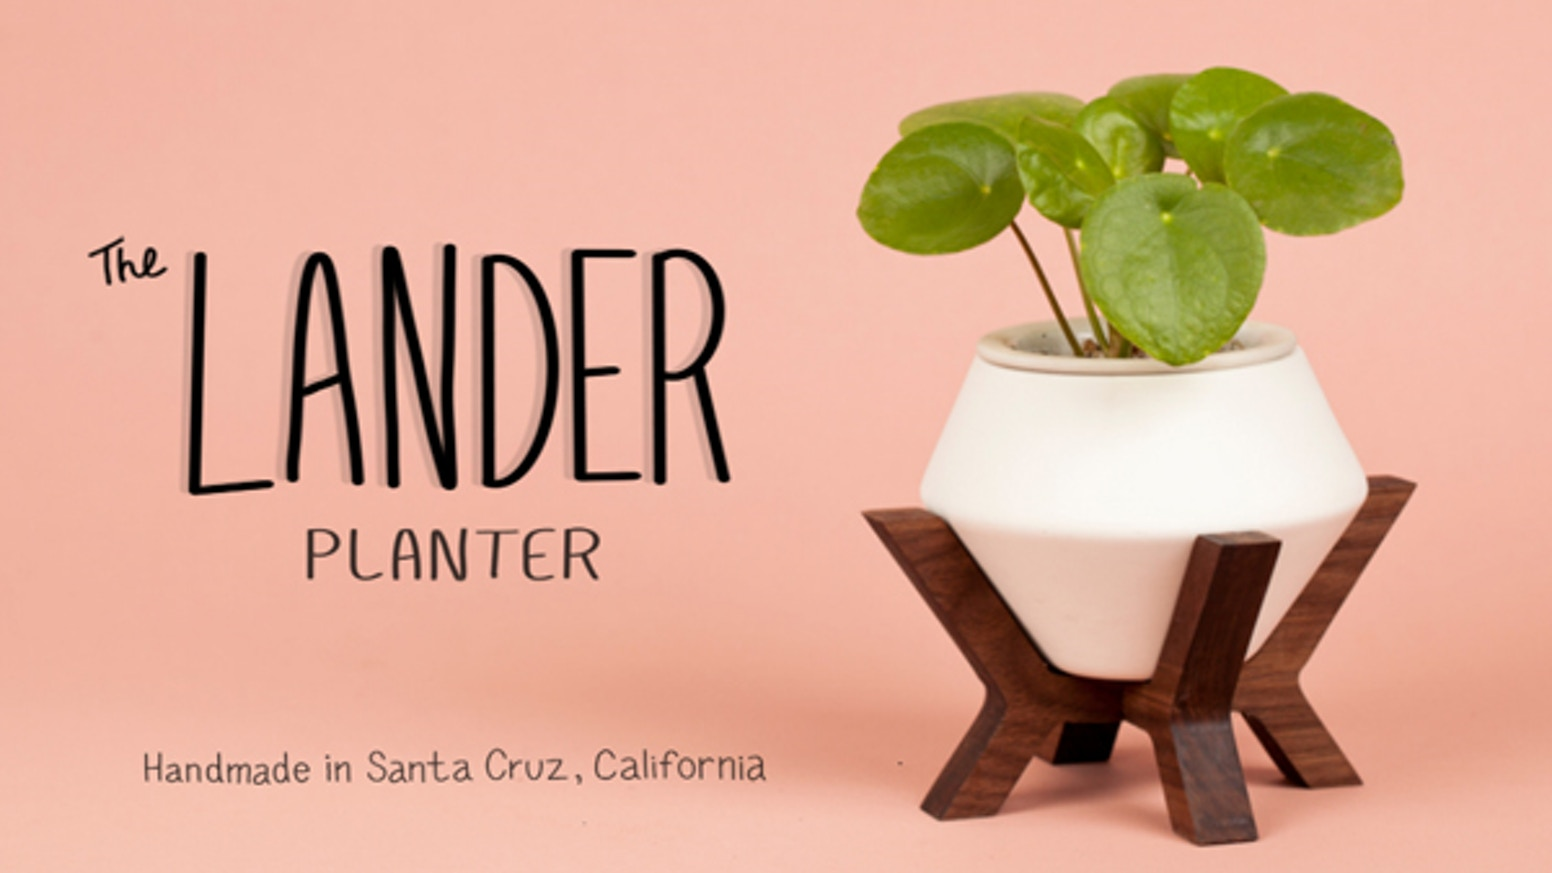 A simple self watering planter designed to bring joy to your living and work spaces.